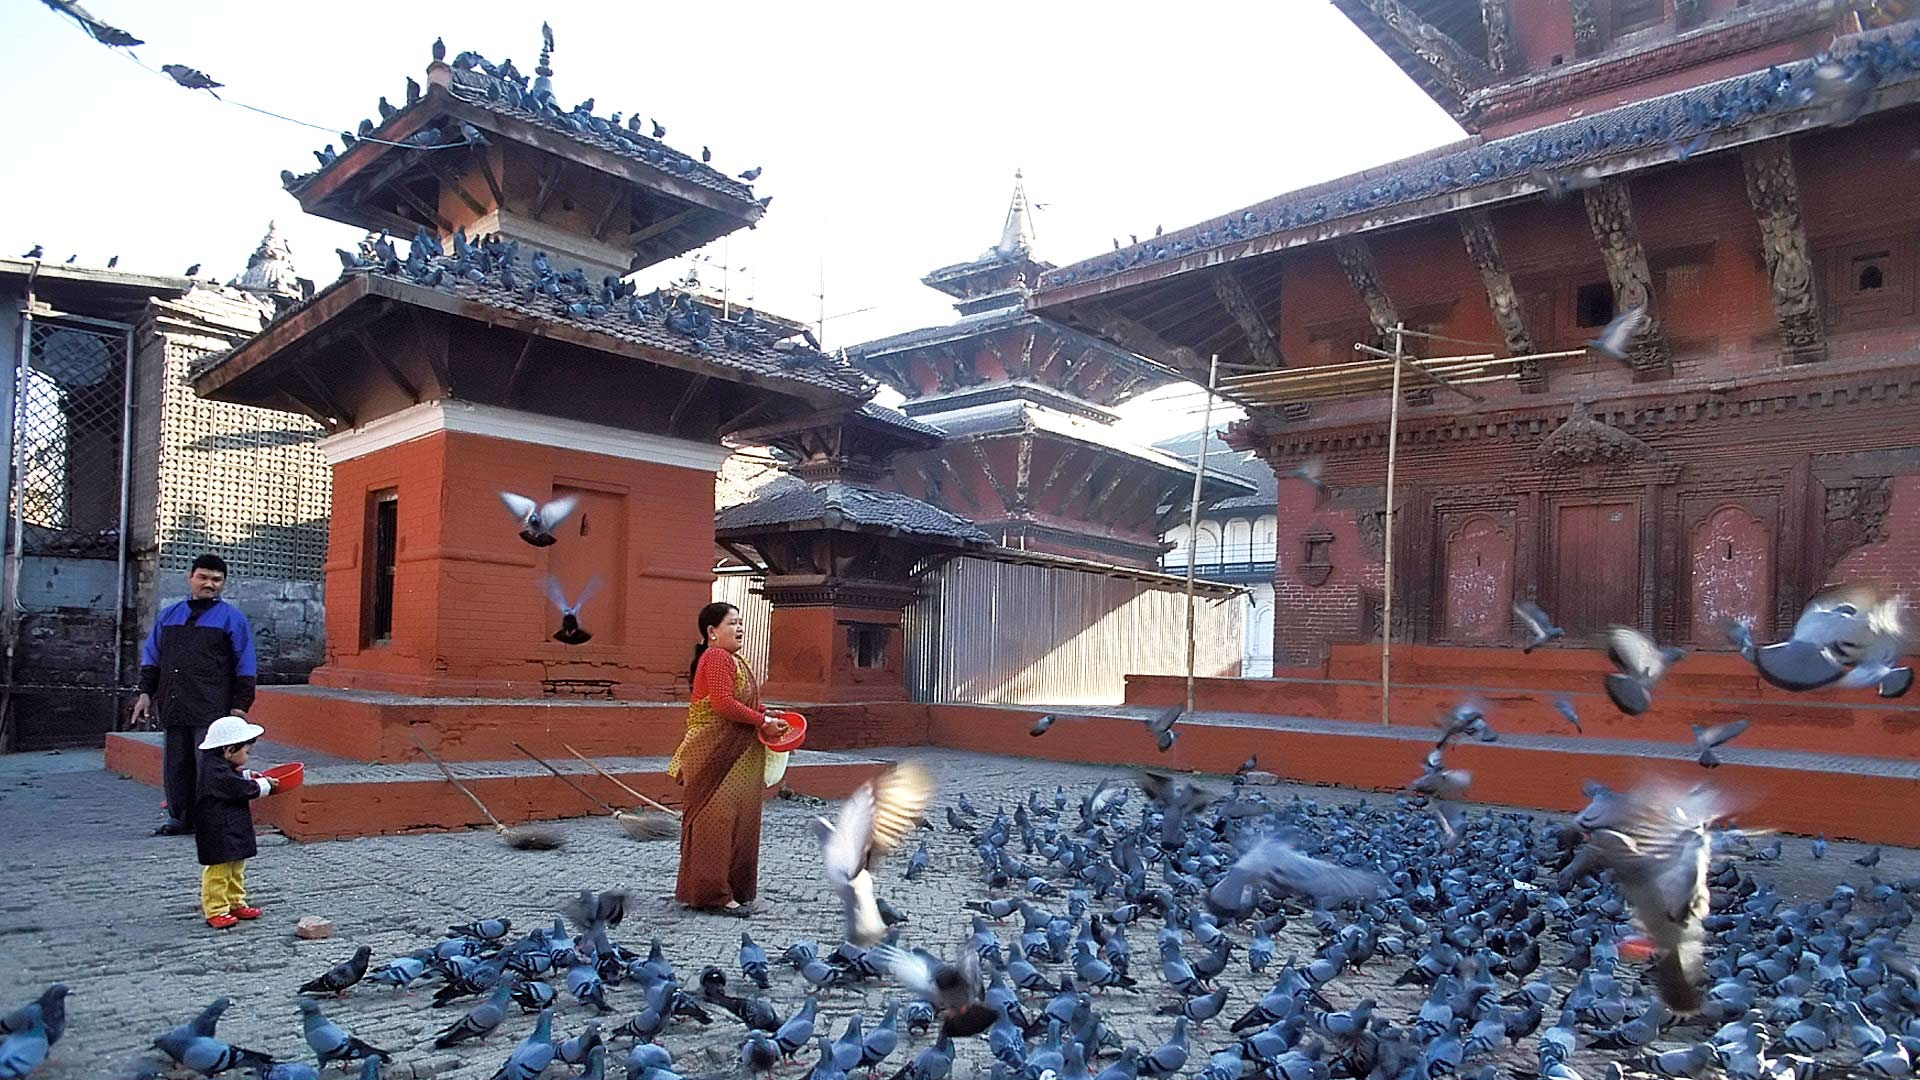 Pigeons on the square at the Jagannath Temple, Kathmandu, Madhyamanchal (Central Region), Nepal